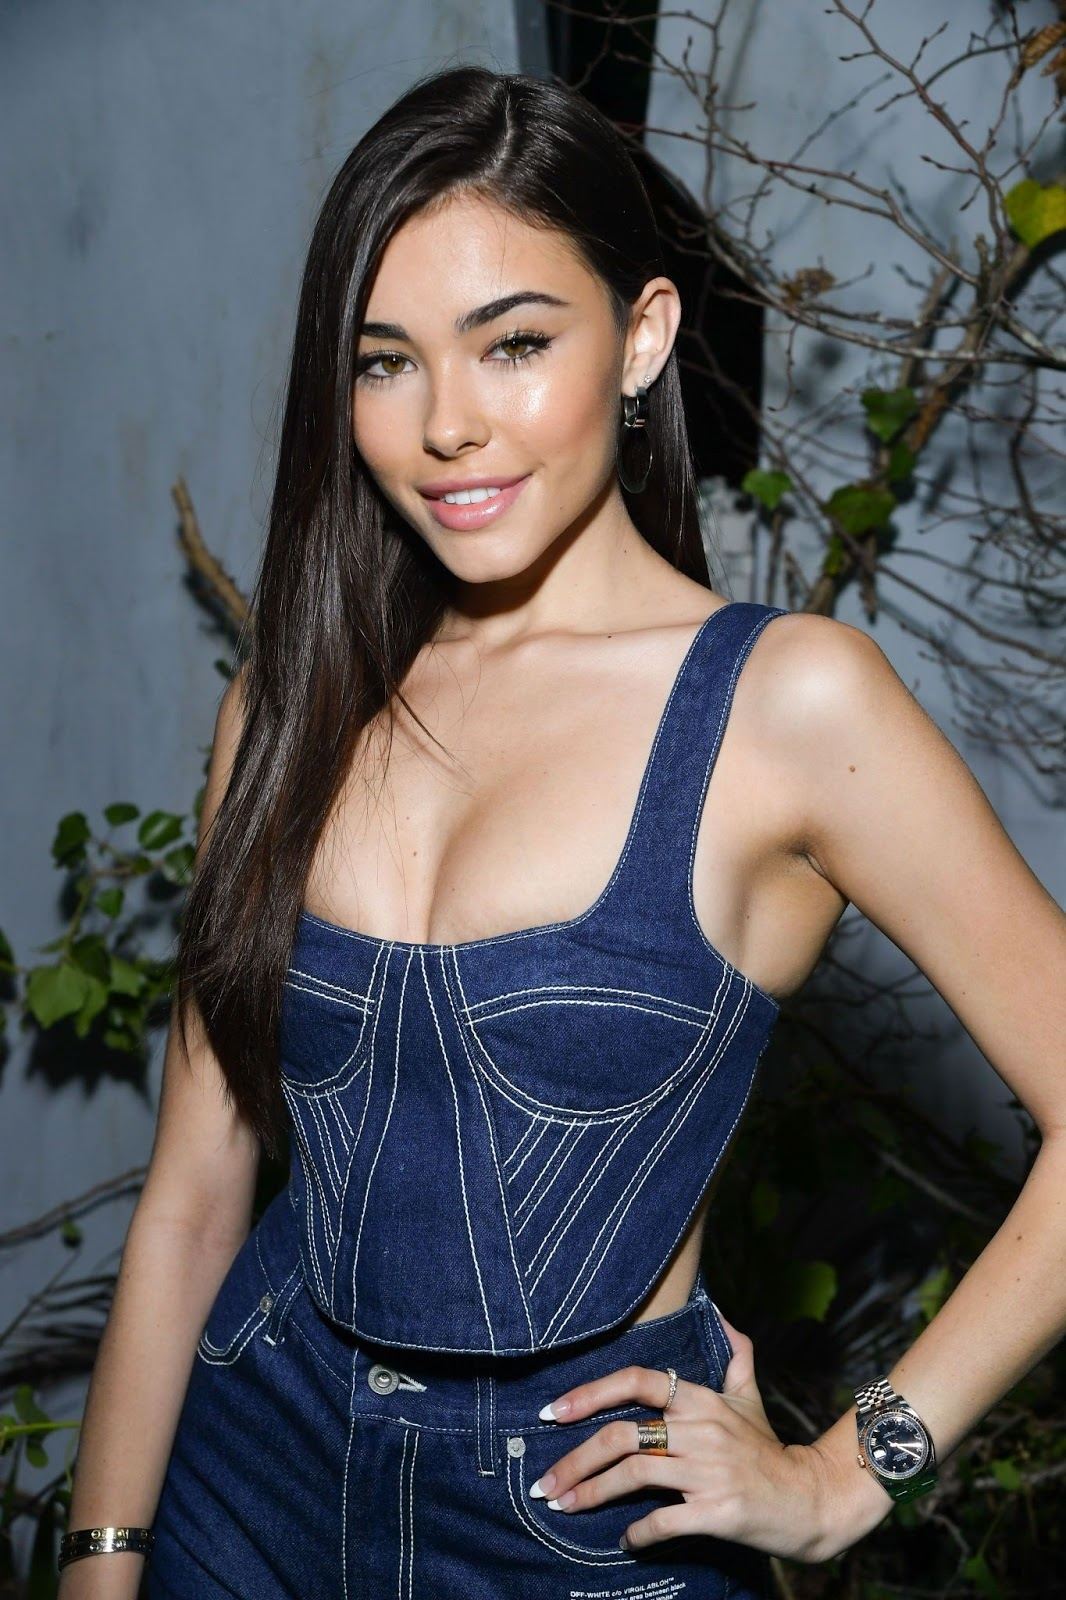 Madison Beer Outside the Off White Fashion Show in Paris (2/2)